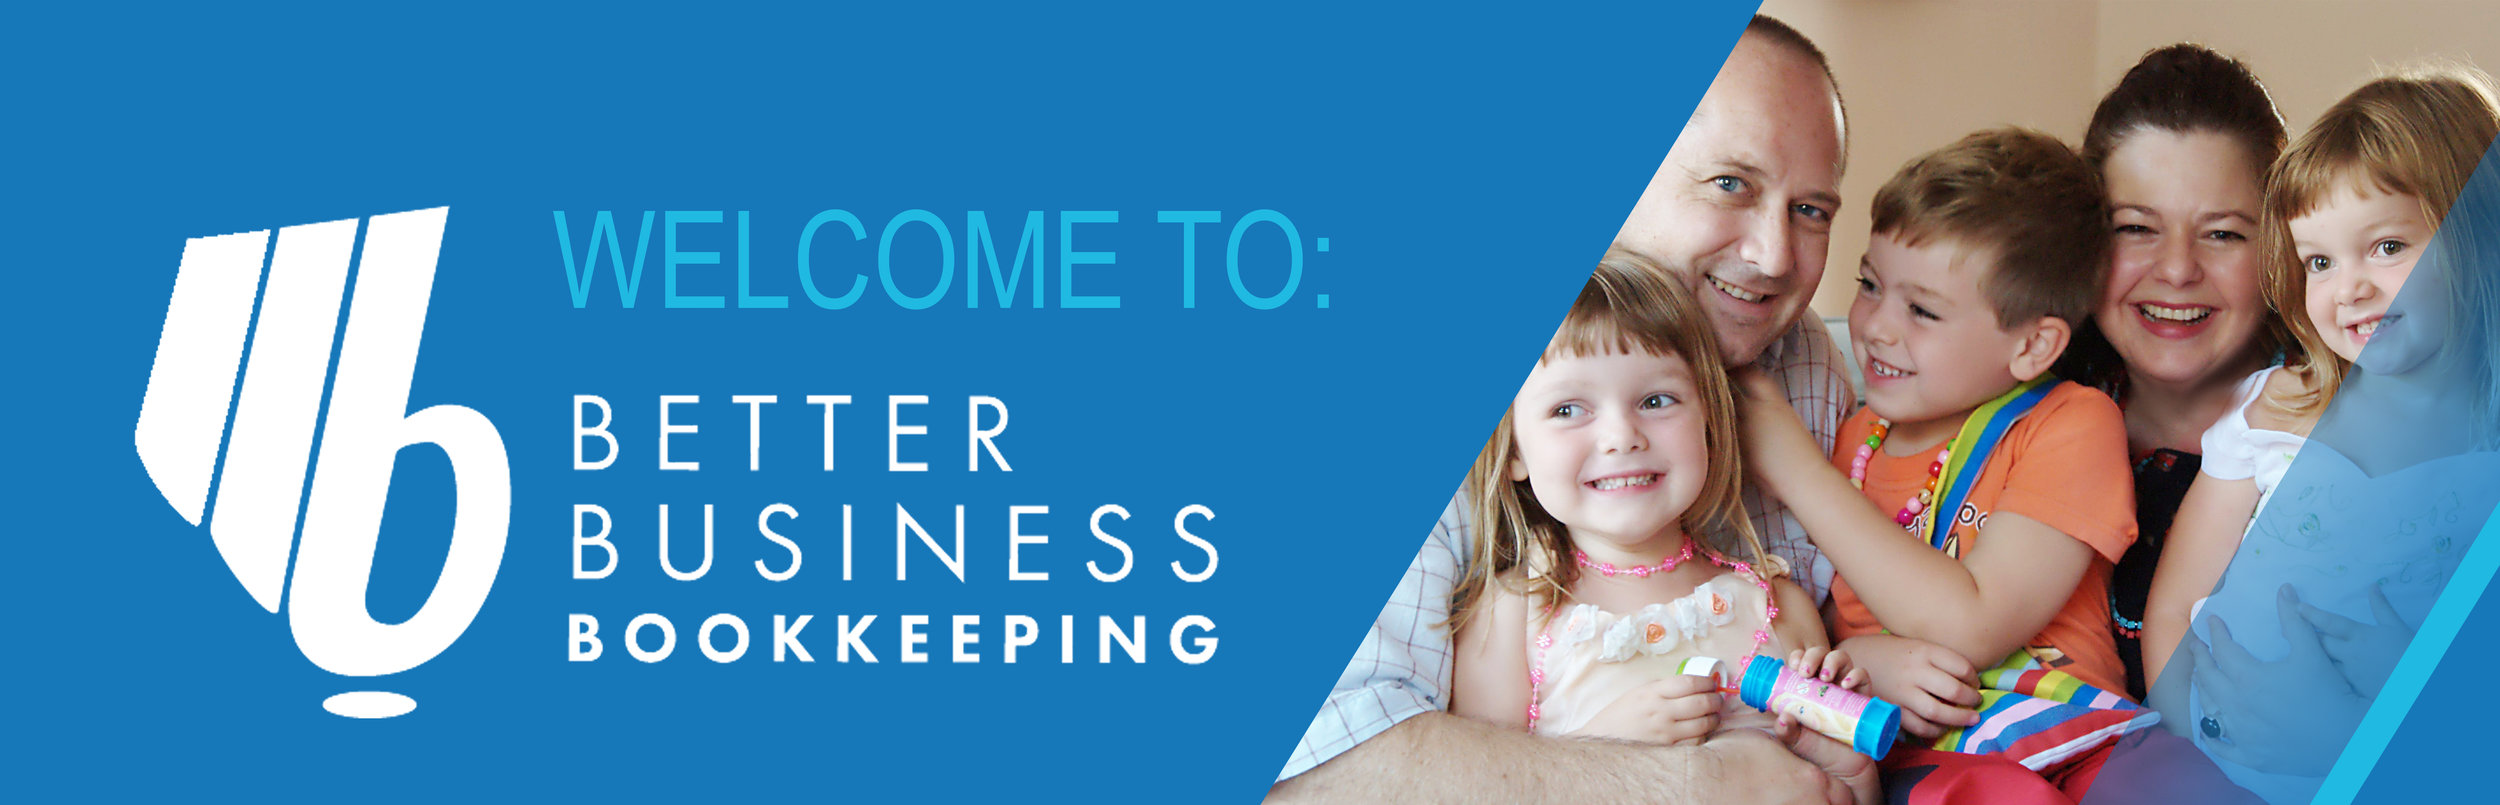 Better Business Bookkeeping_ Welcome